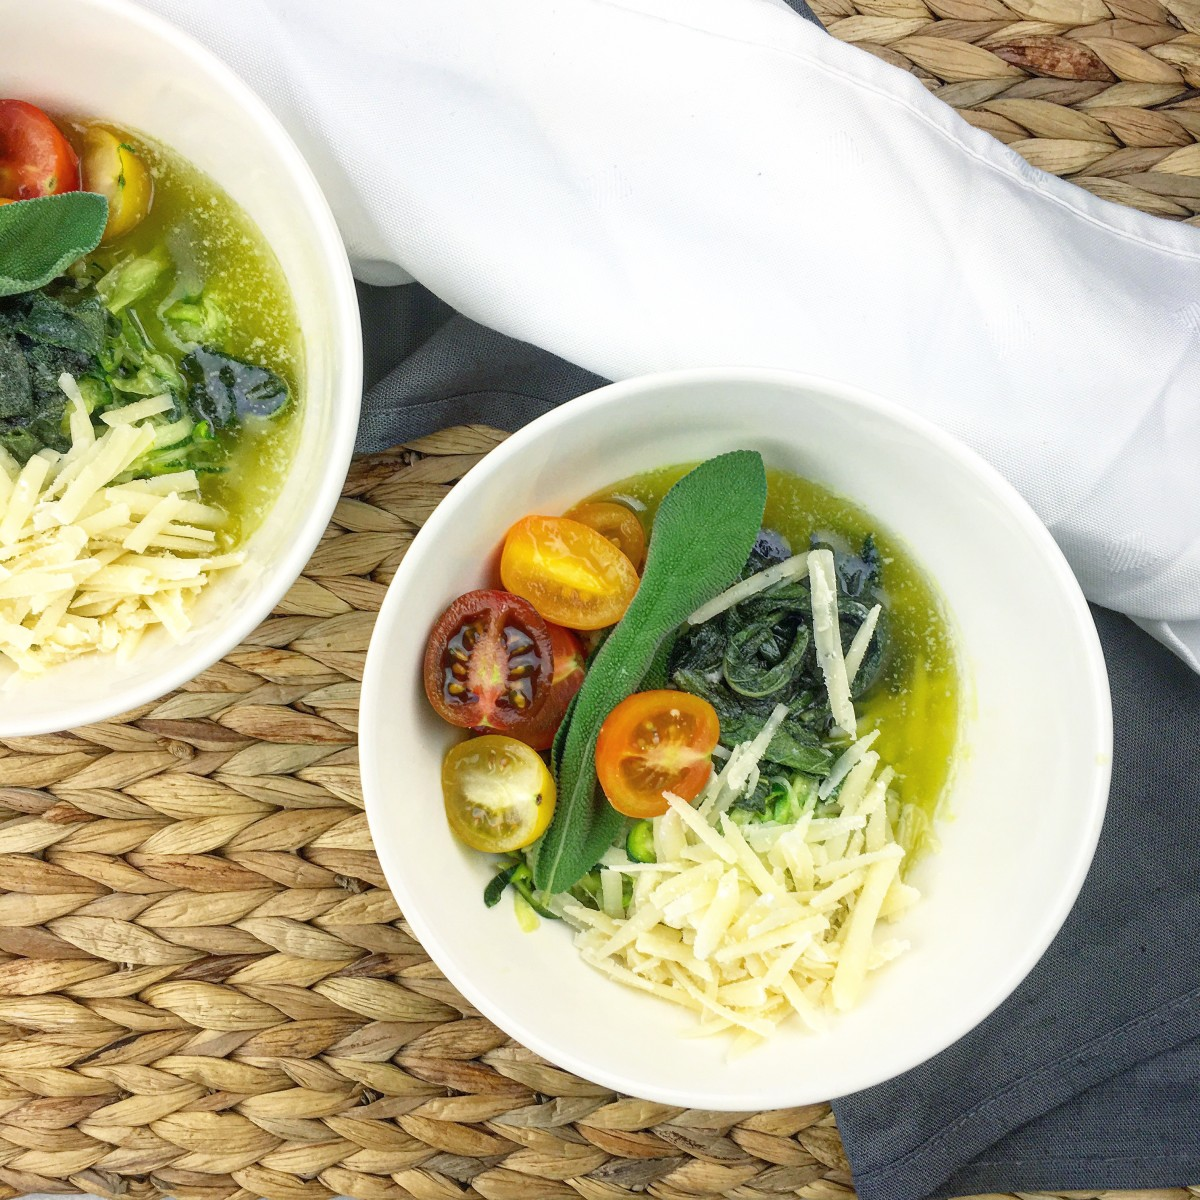 Courgetti met salieboter